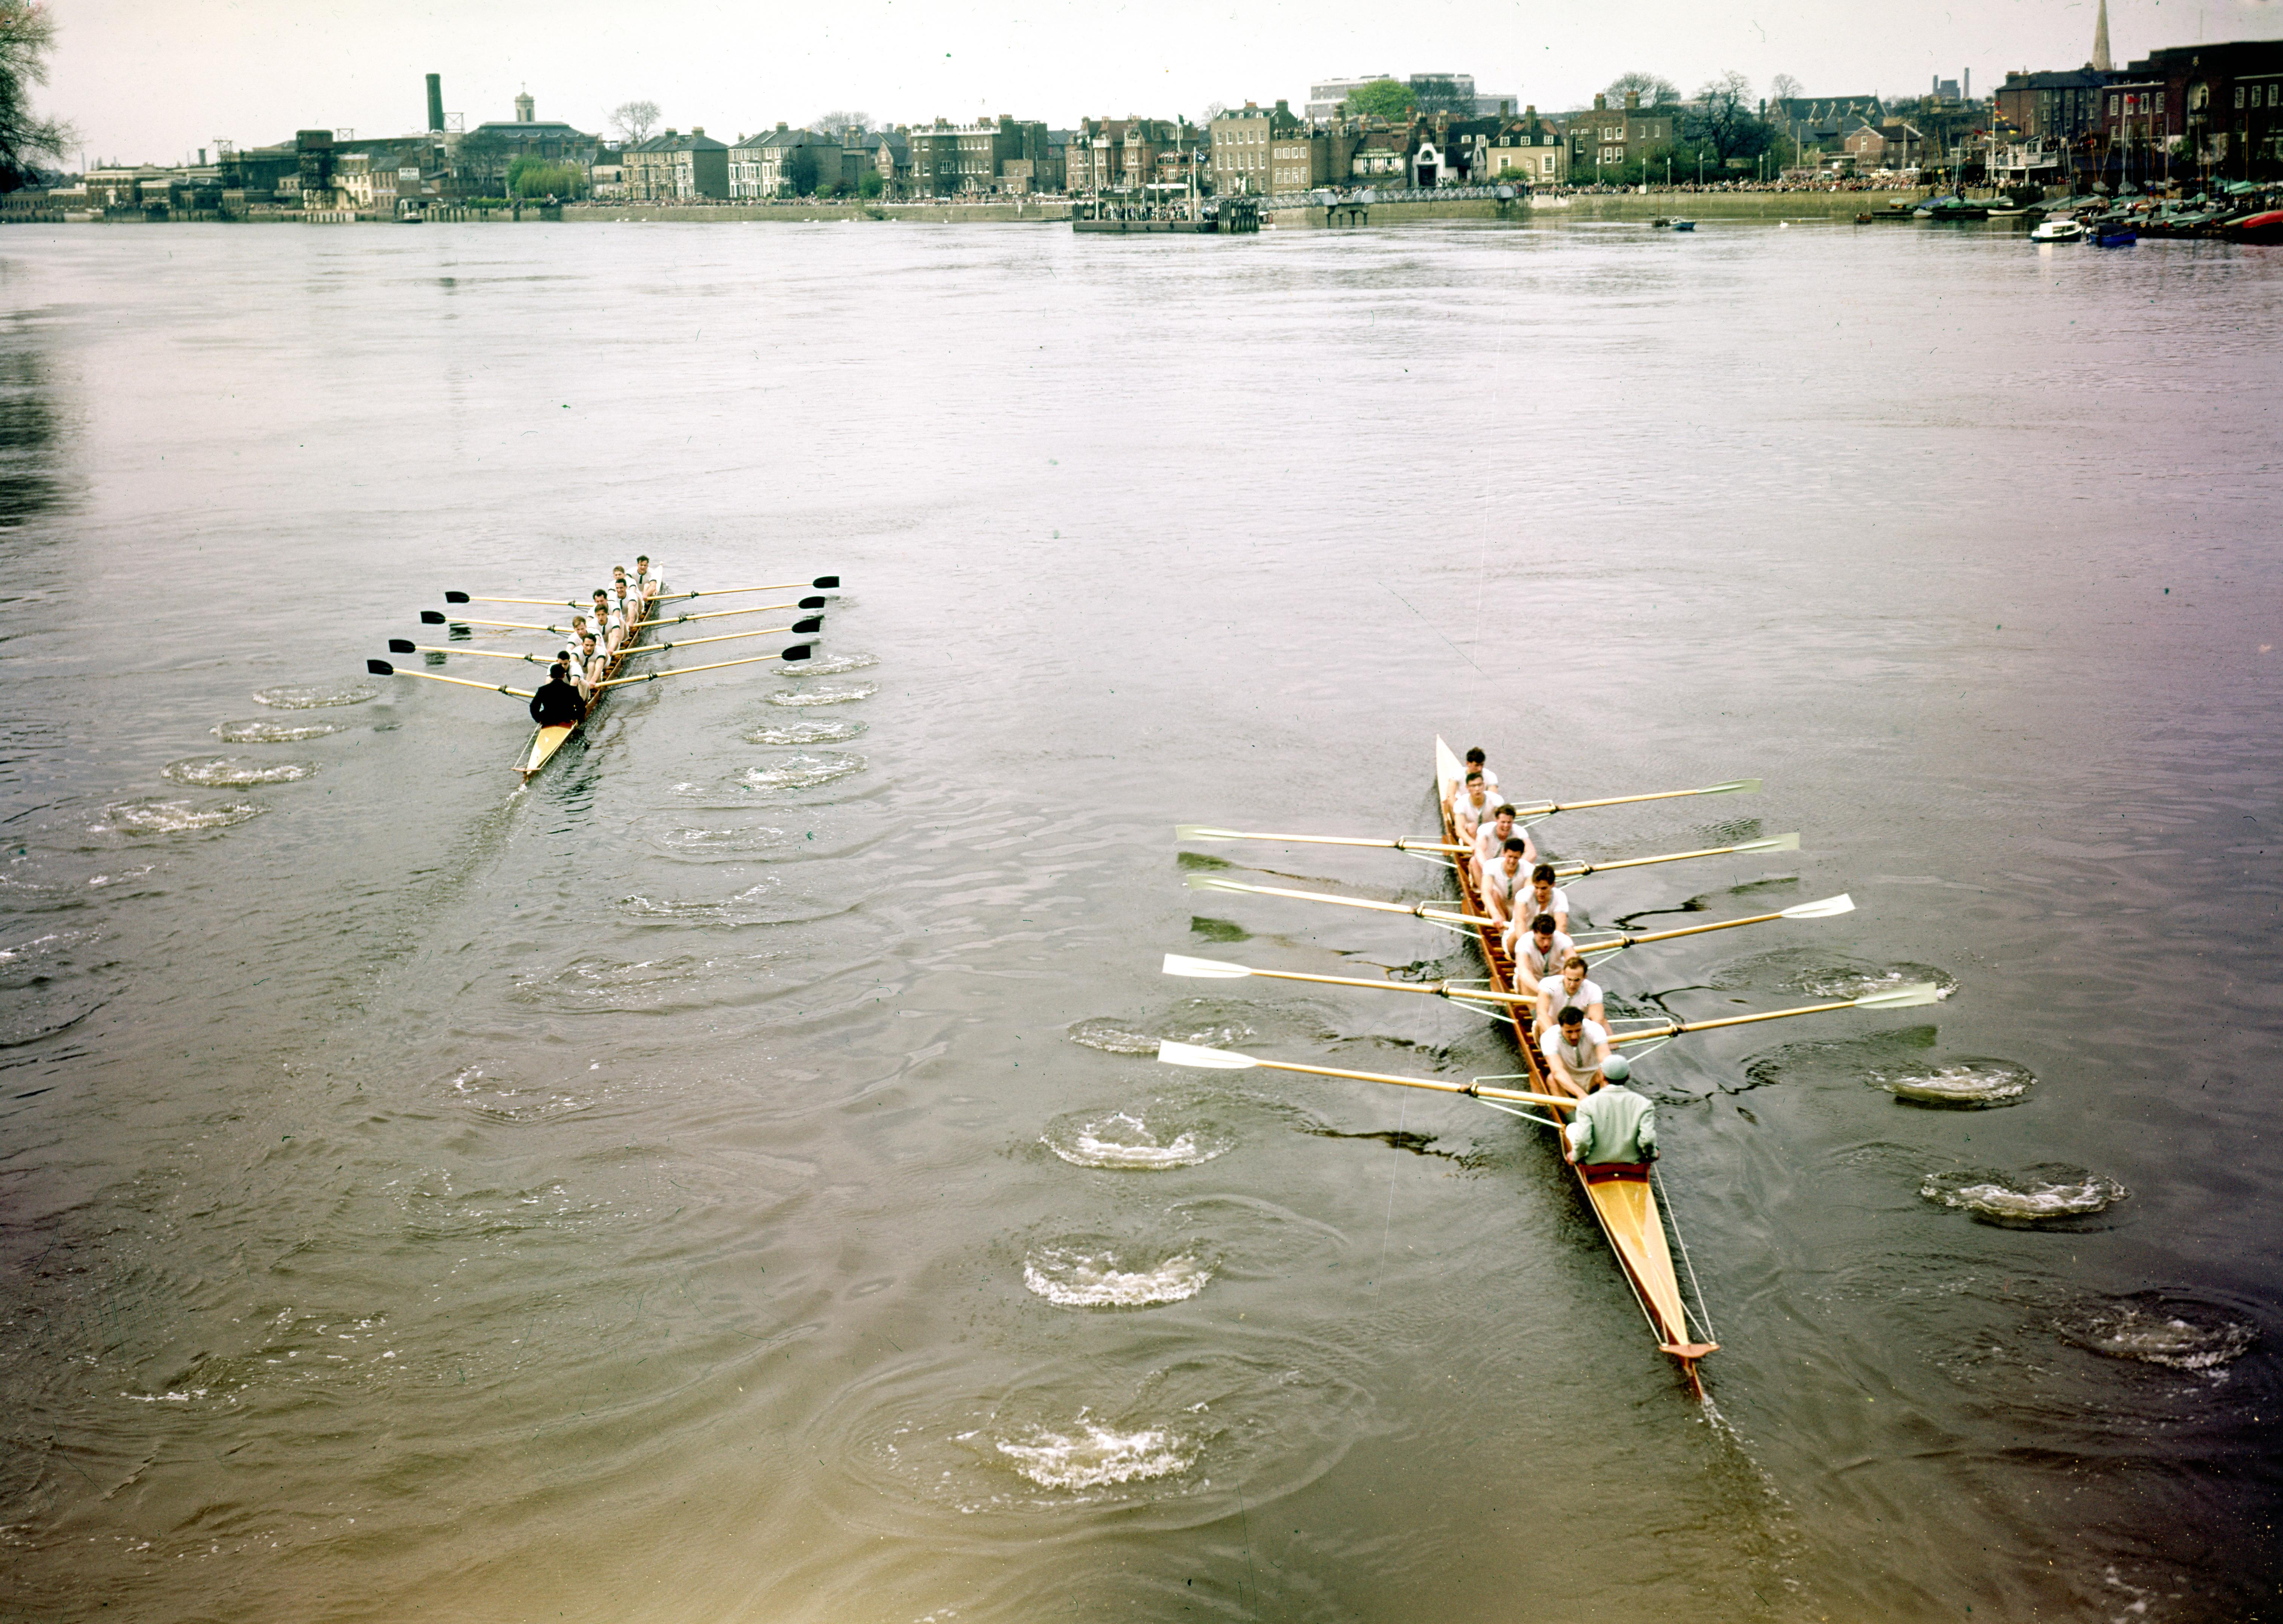 The Men's Boat Race has been taking place since 1829